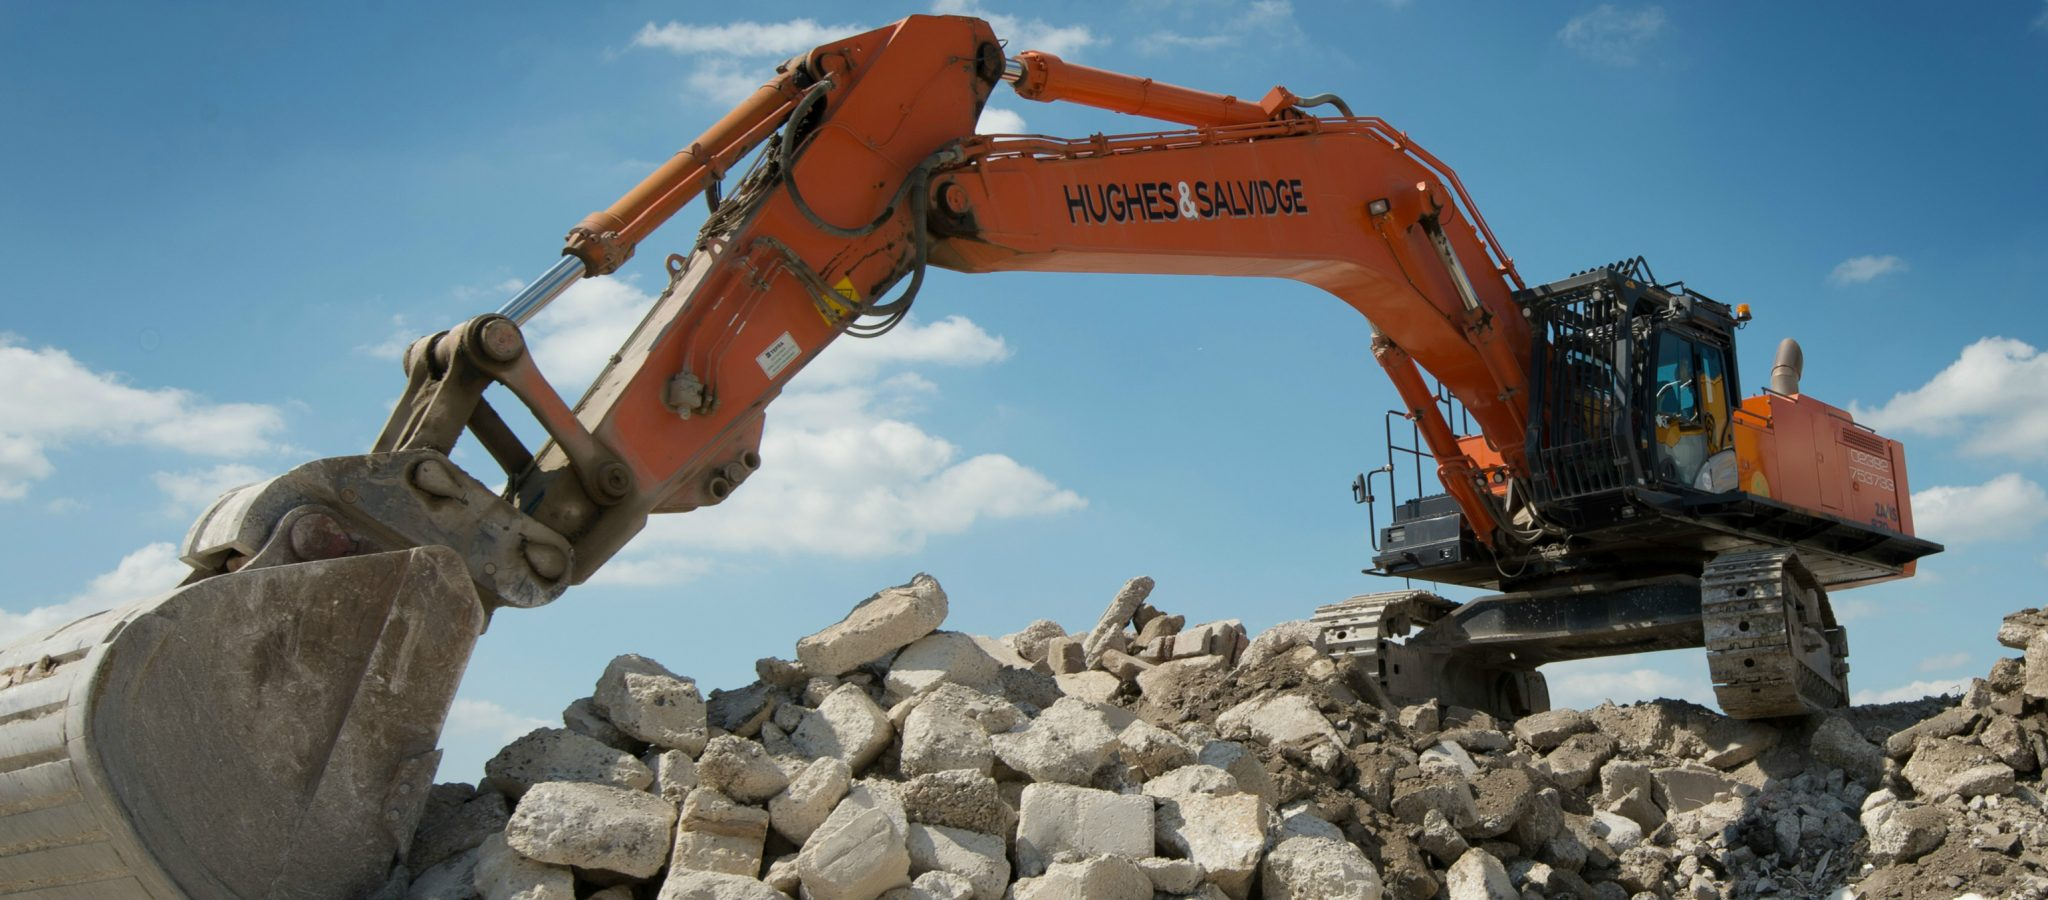 Hughes and Salvidge digger on rubble